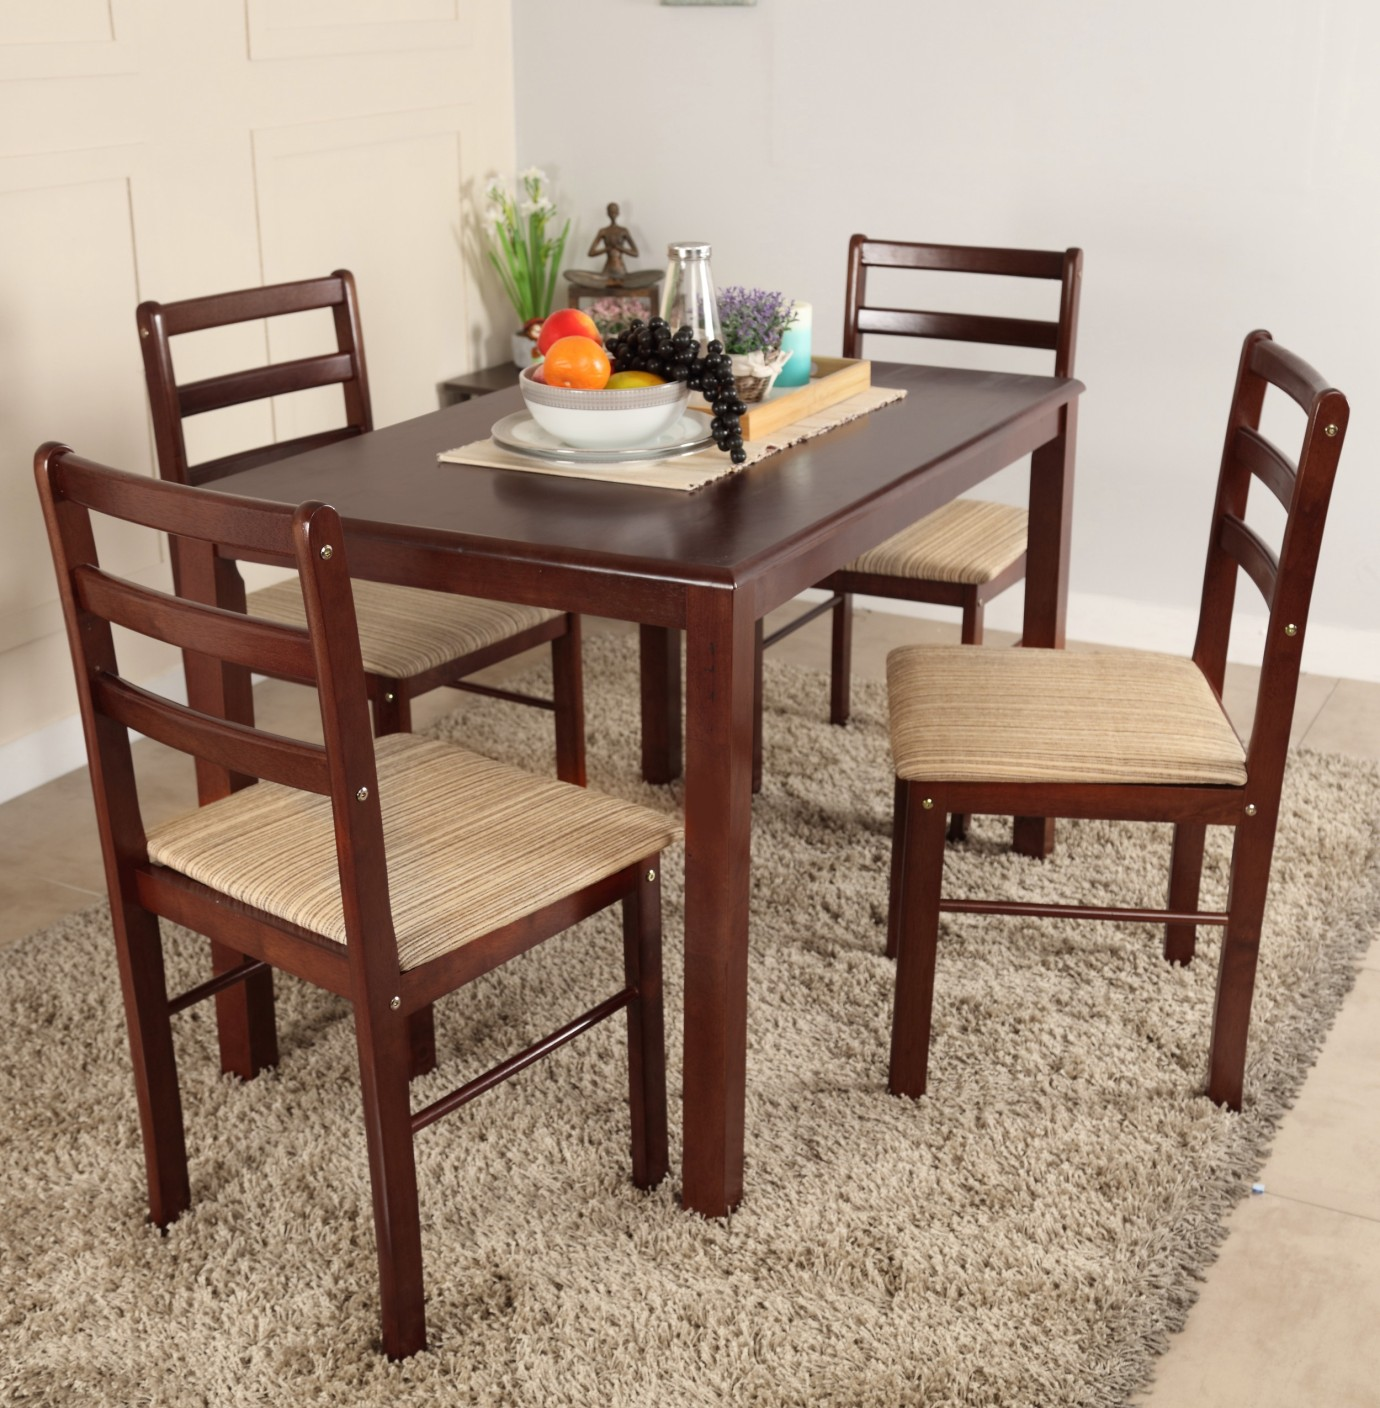 Woodness solid wood 4 seater dining set price in india for Wood dining table set